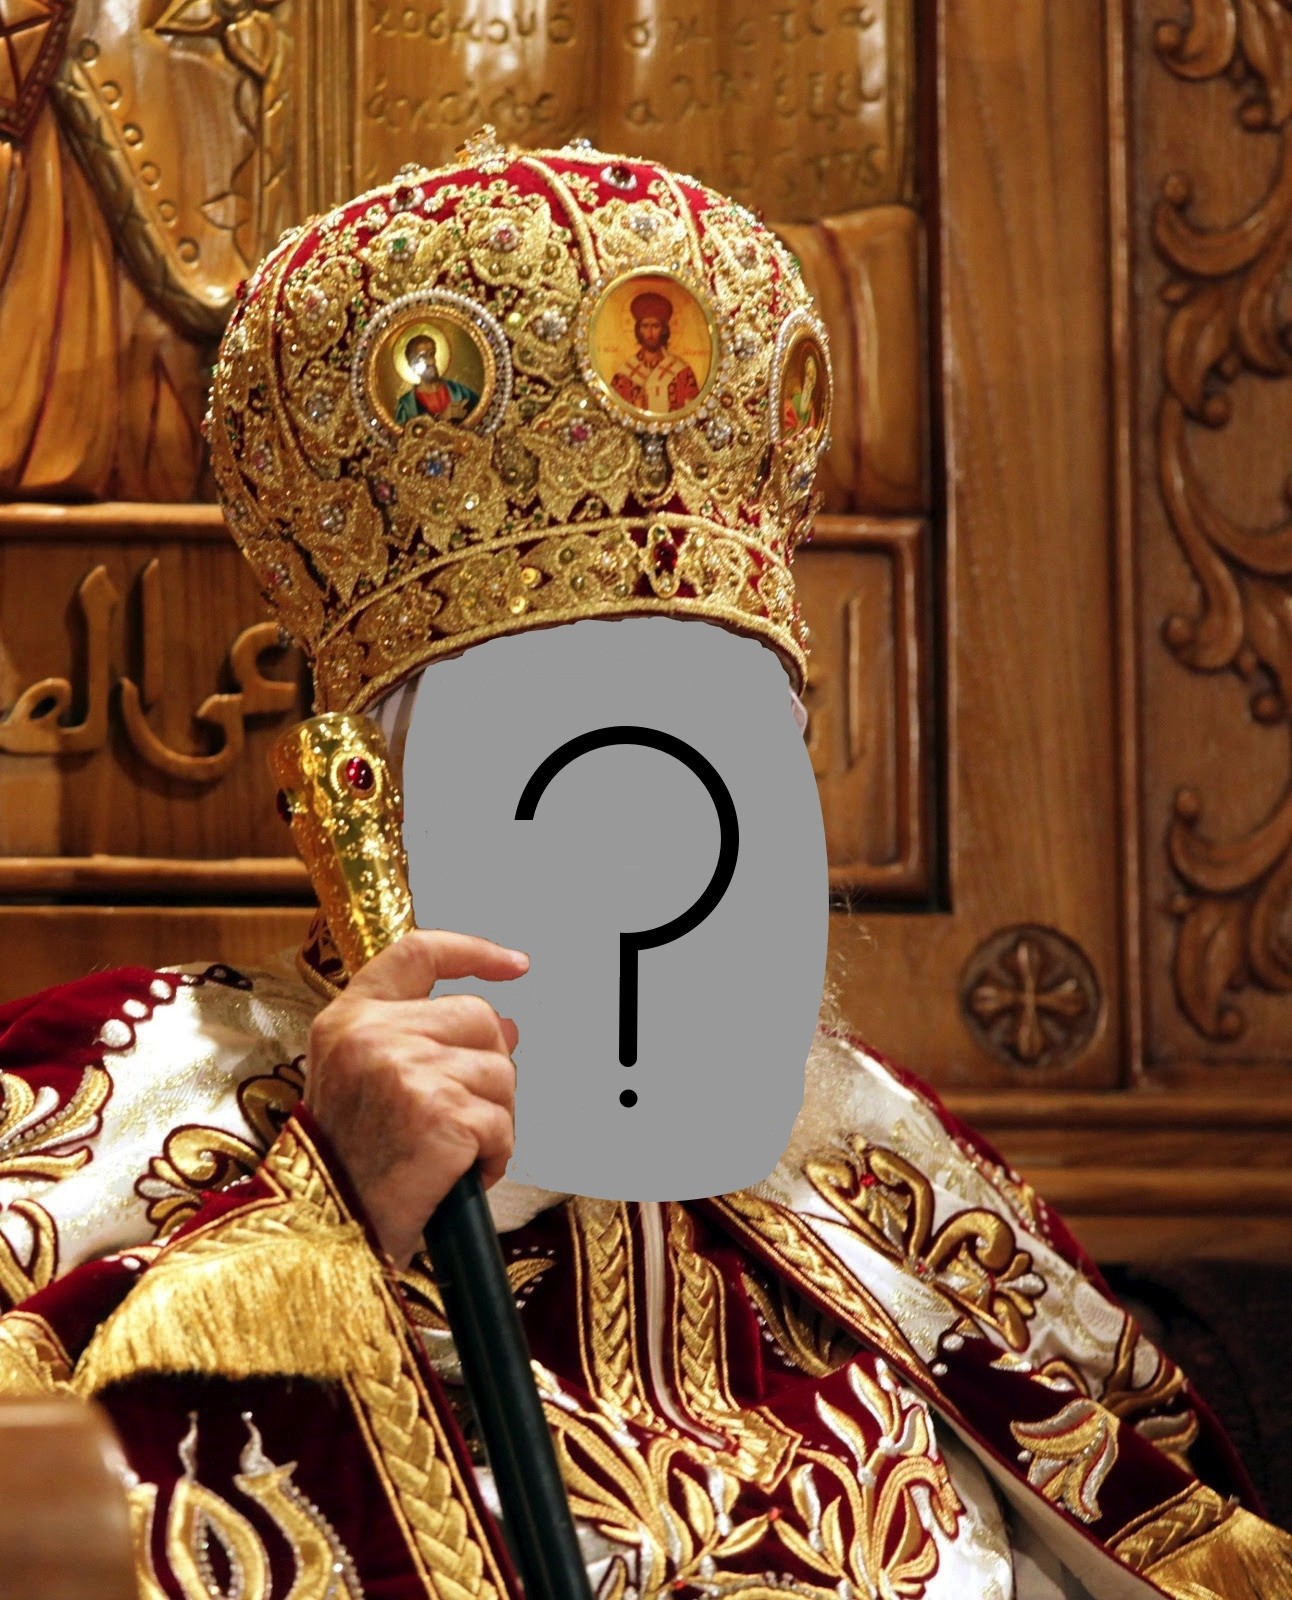 Pope - Who